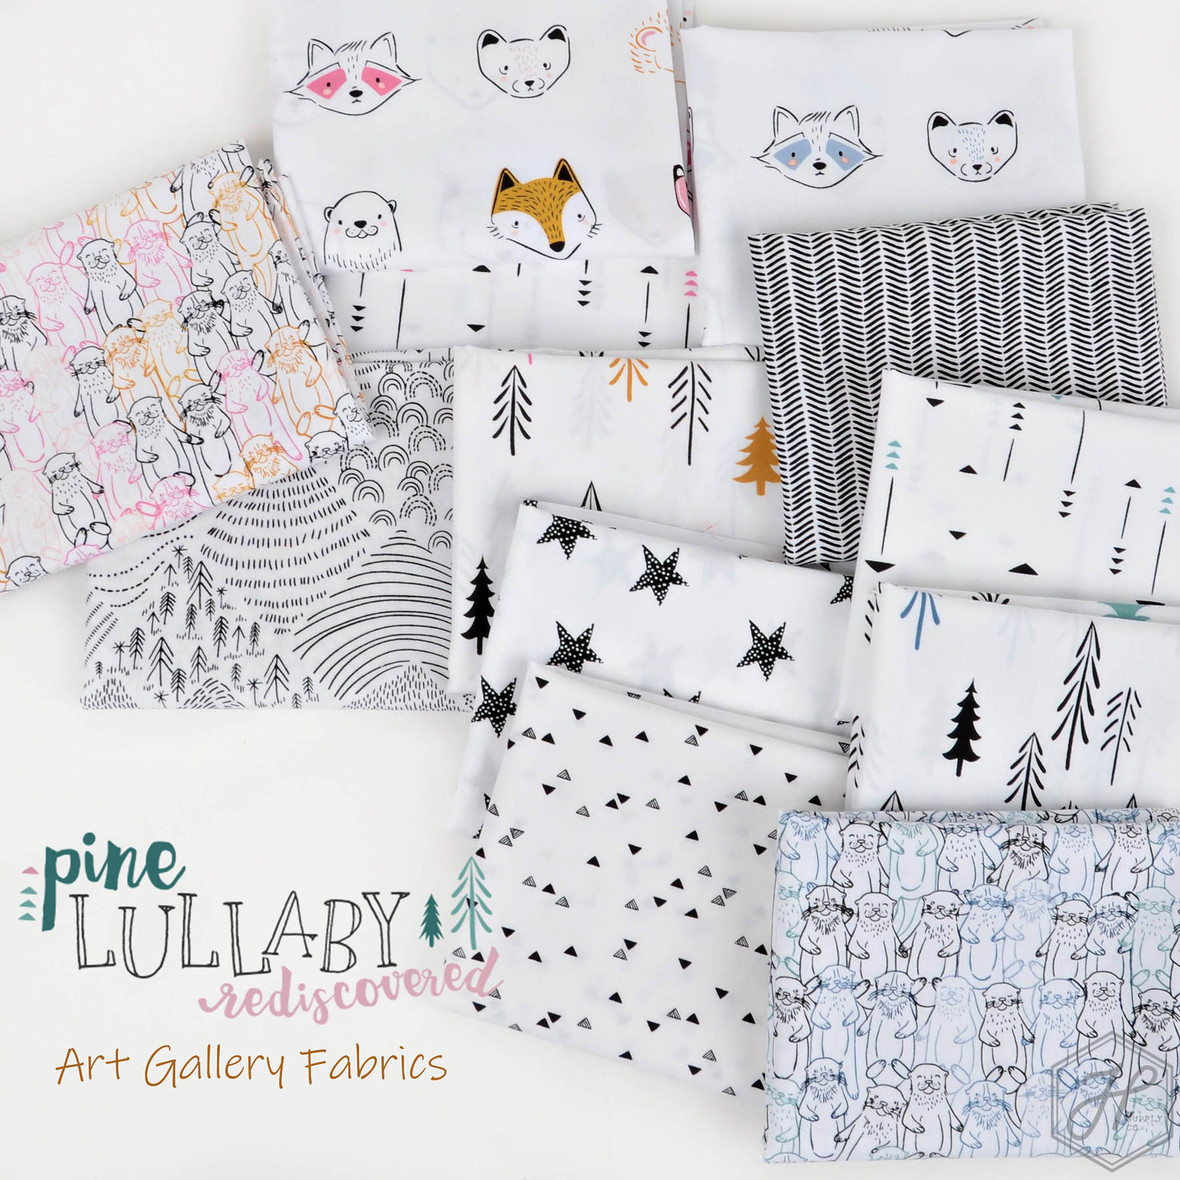 New Pine Lullaby Art Gallery at Hawthorne Supply Co